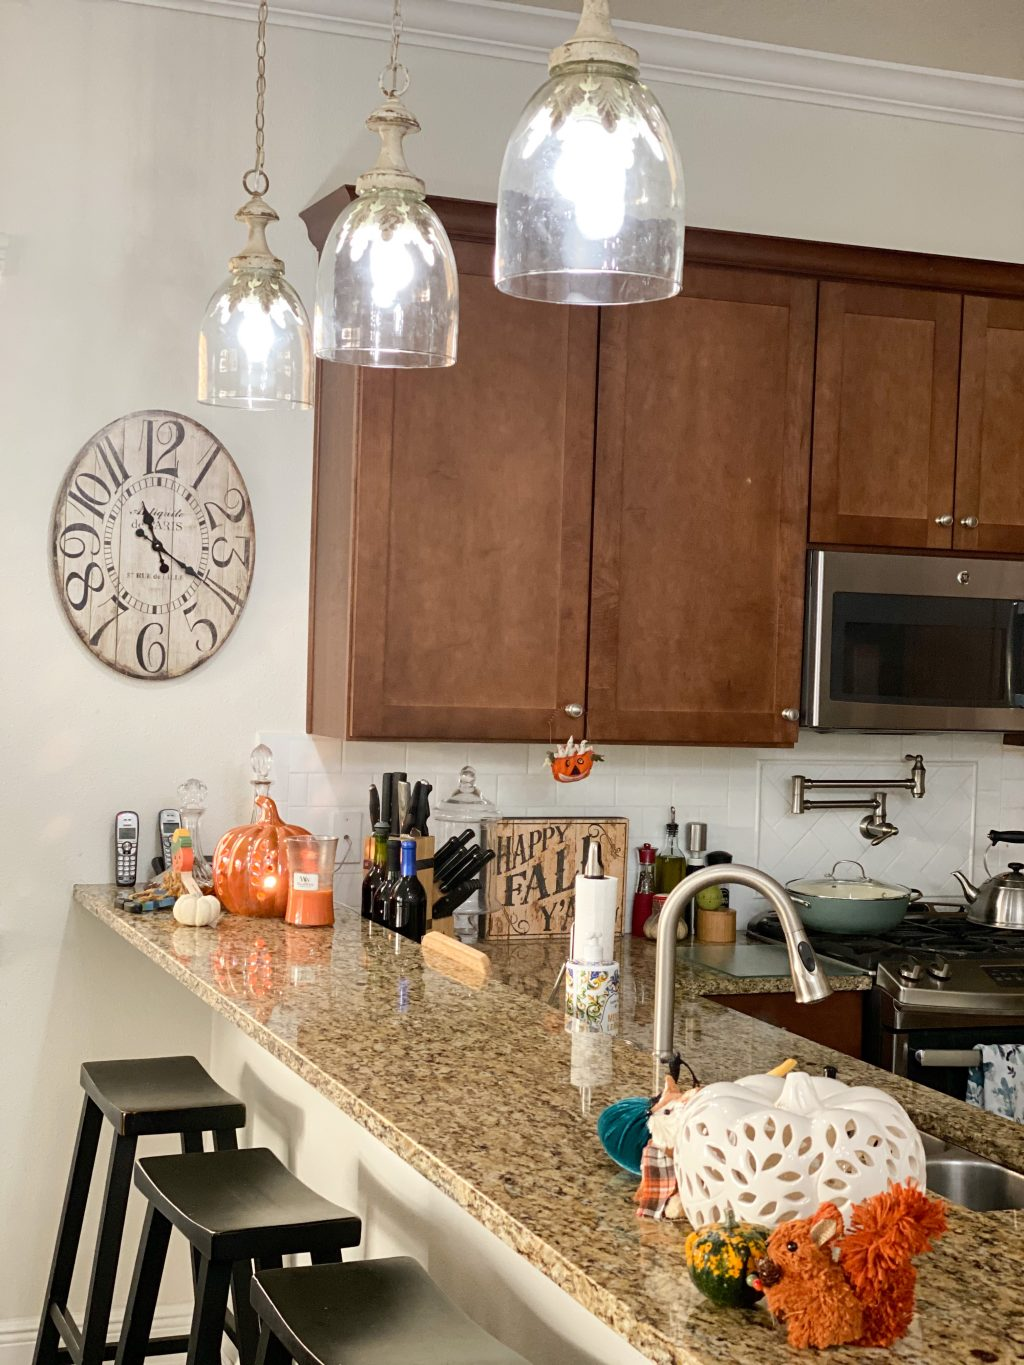 off white distressed pendant lights hanging over brown granite counter